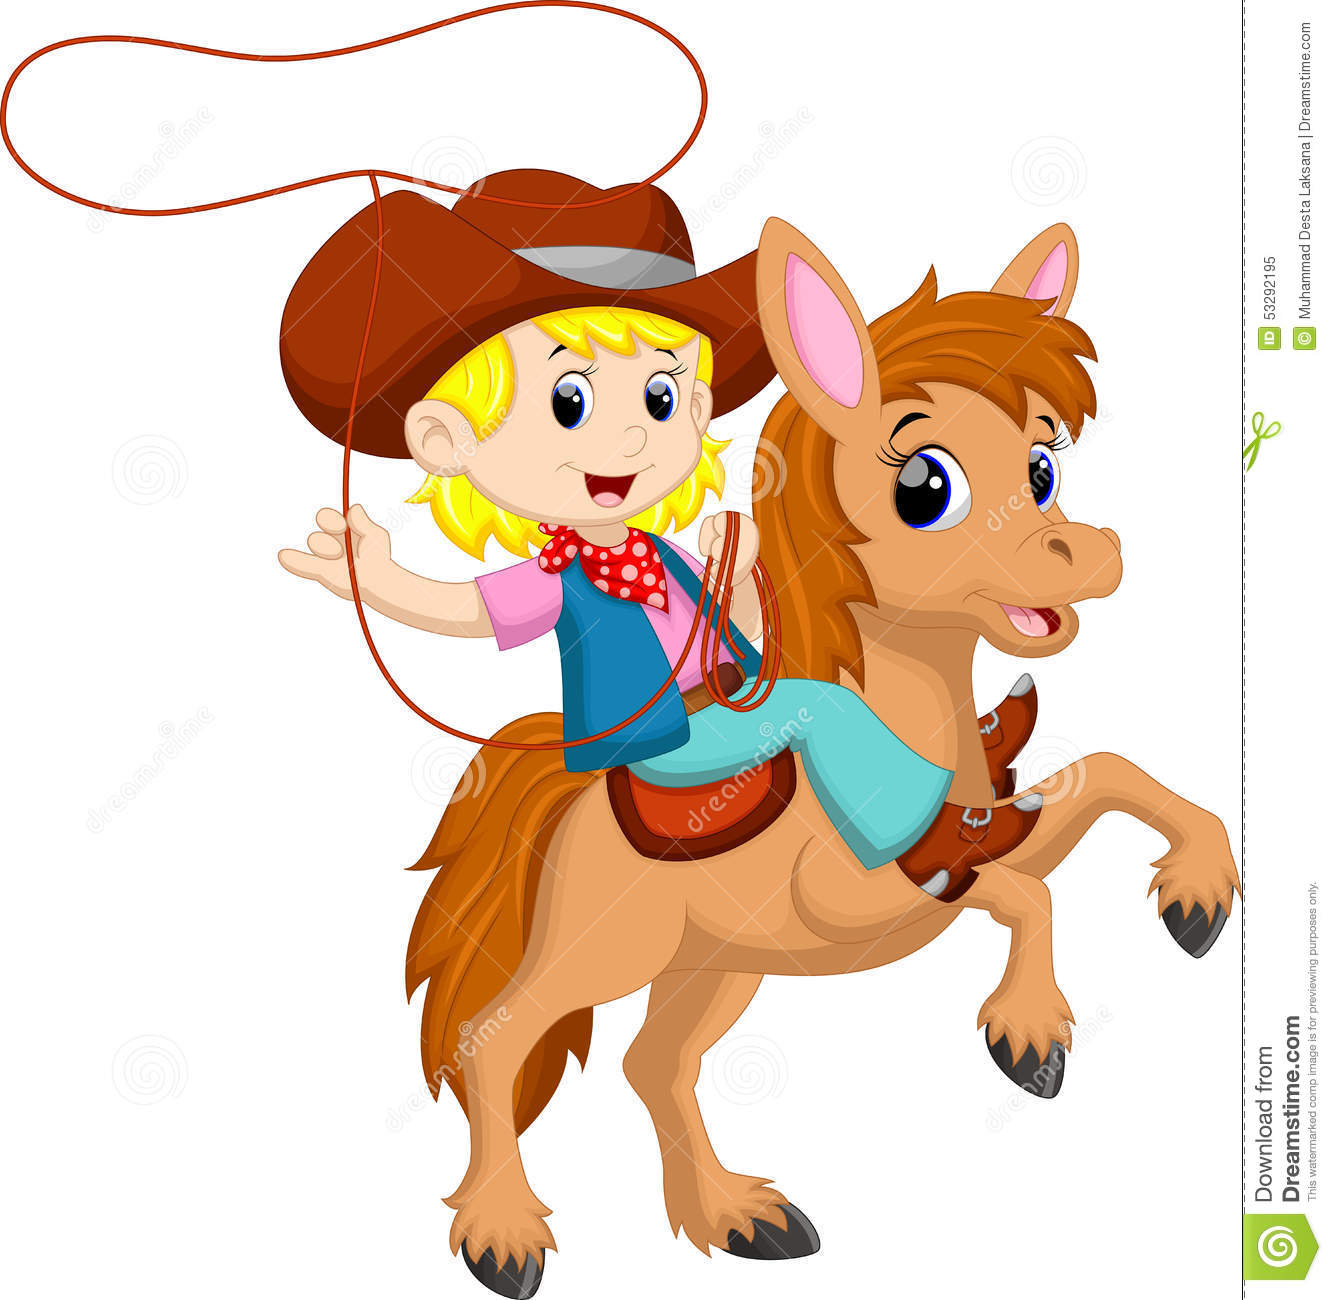 cowgirl and cowboy clipart at getdrawings com free for personal rh getdrawings com